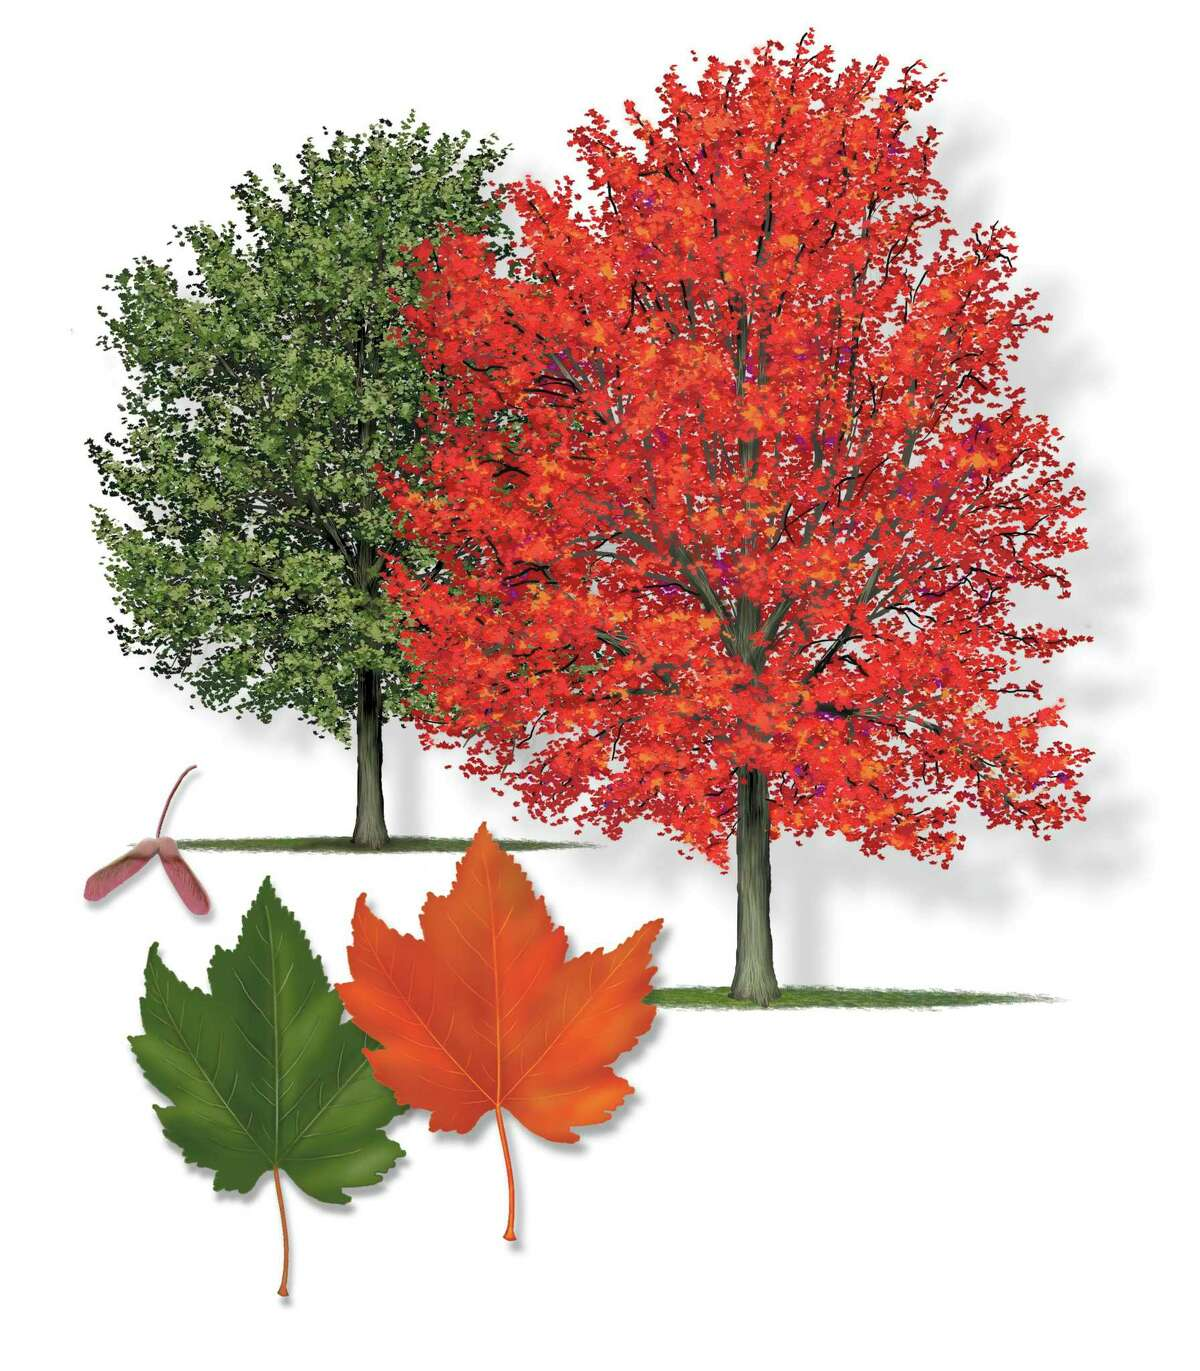 Robert O'Brien's tree illustrations of trees that can offer fall color. This is the Red Maple.